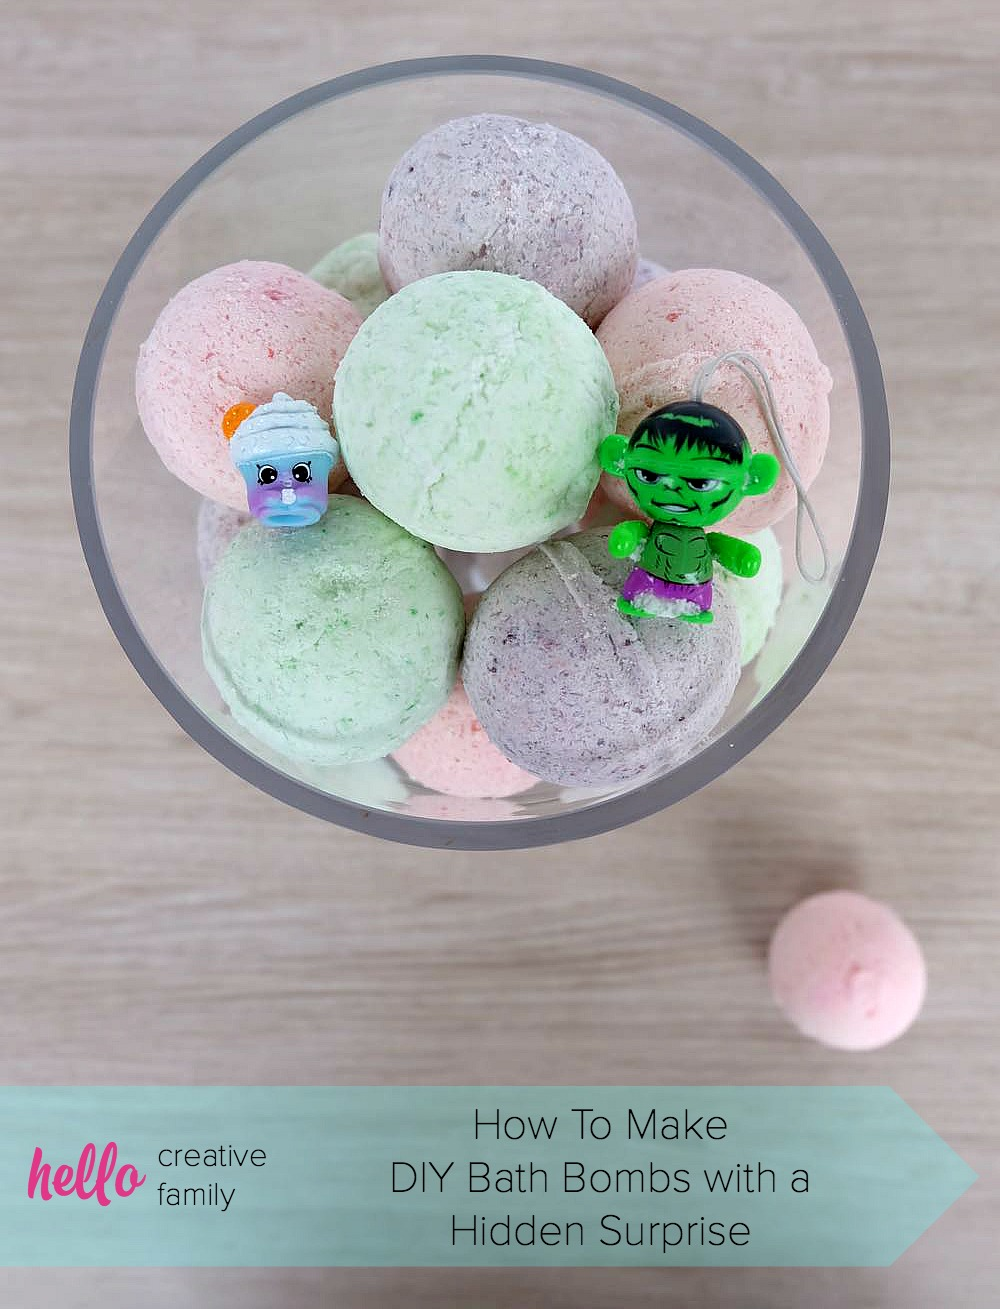 50 Easy Handmade Gift Ideas You'll Love: DIY Bath Bombs With Toys Hidden Inside